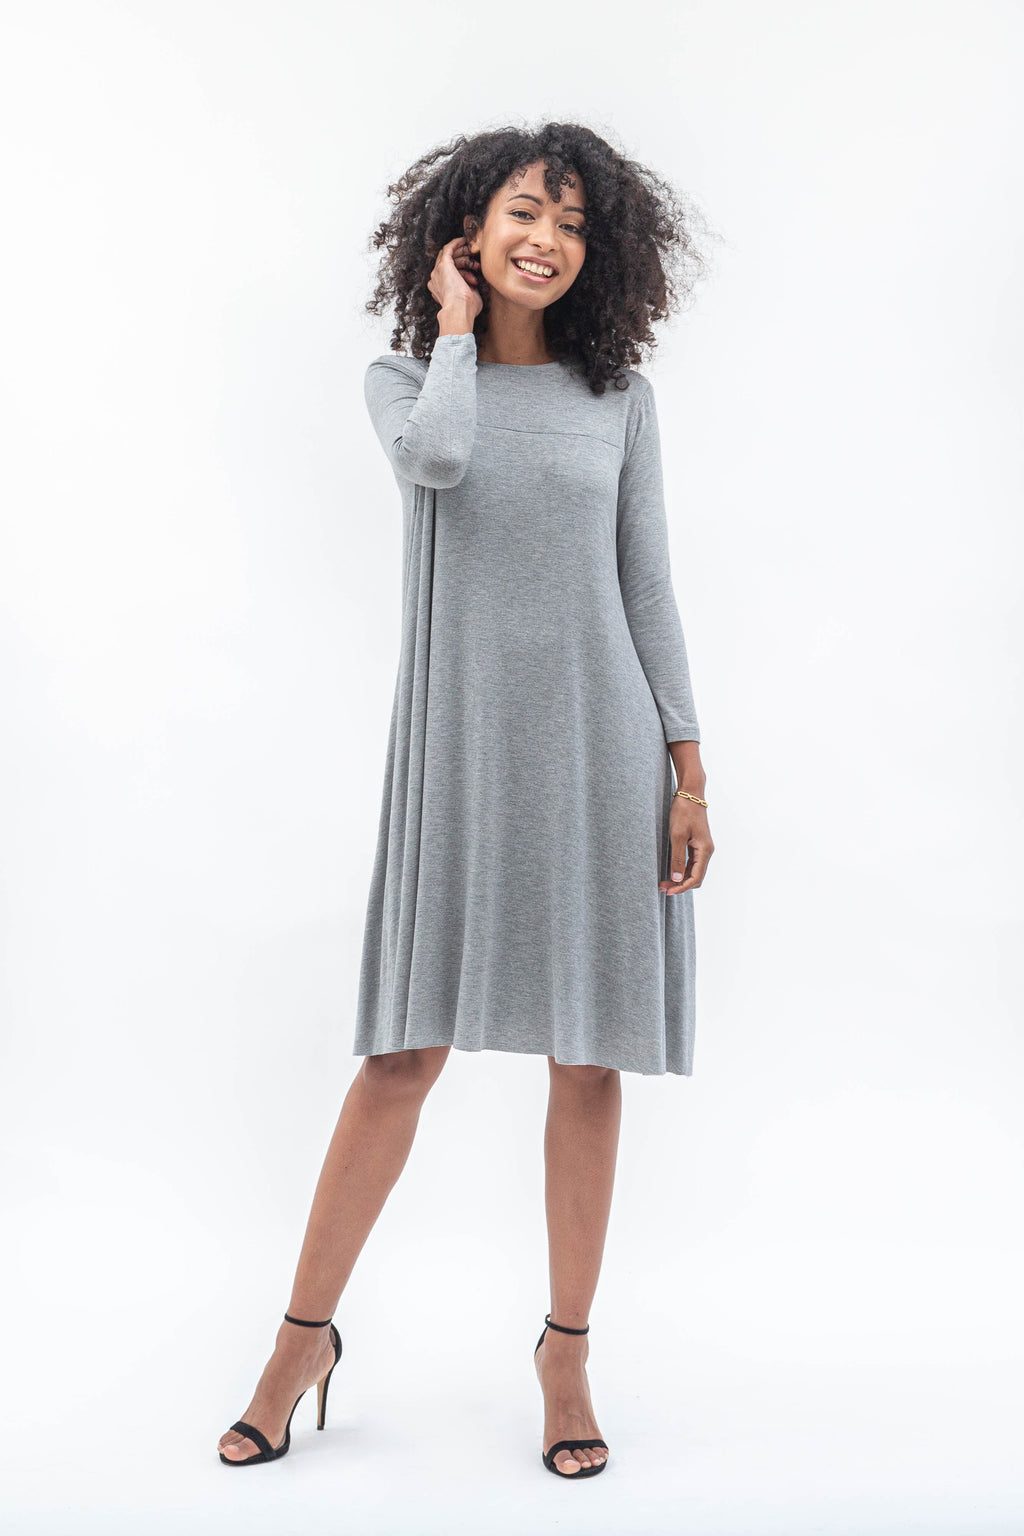 Laya Grey Melange Dress - Sarah Feldman Modest Clothing